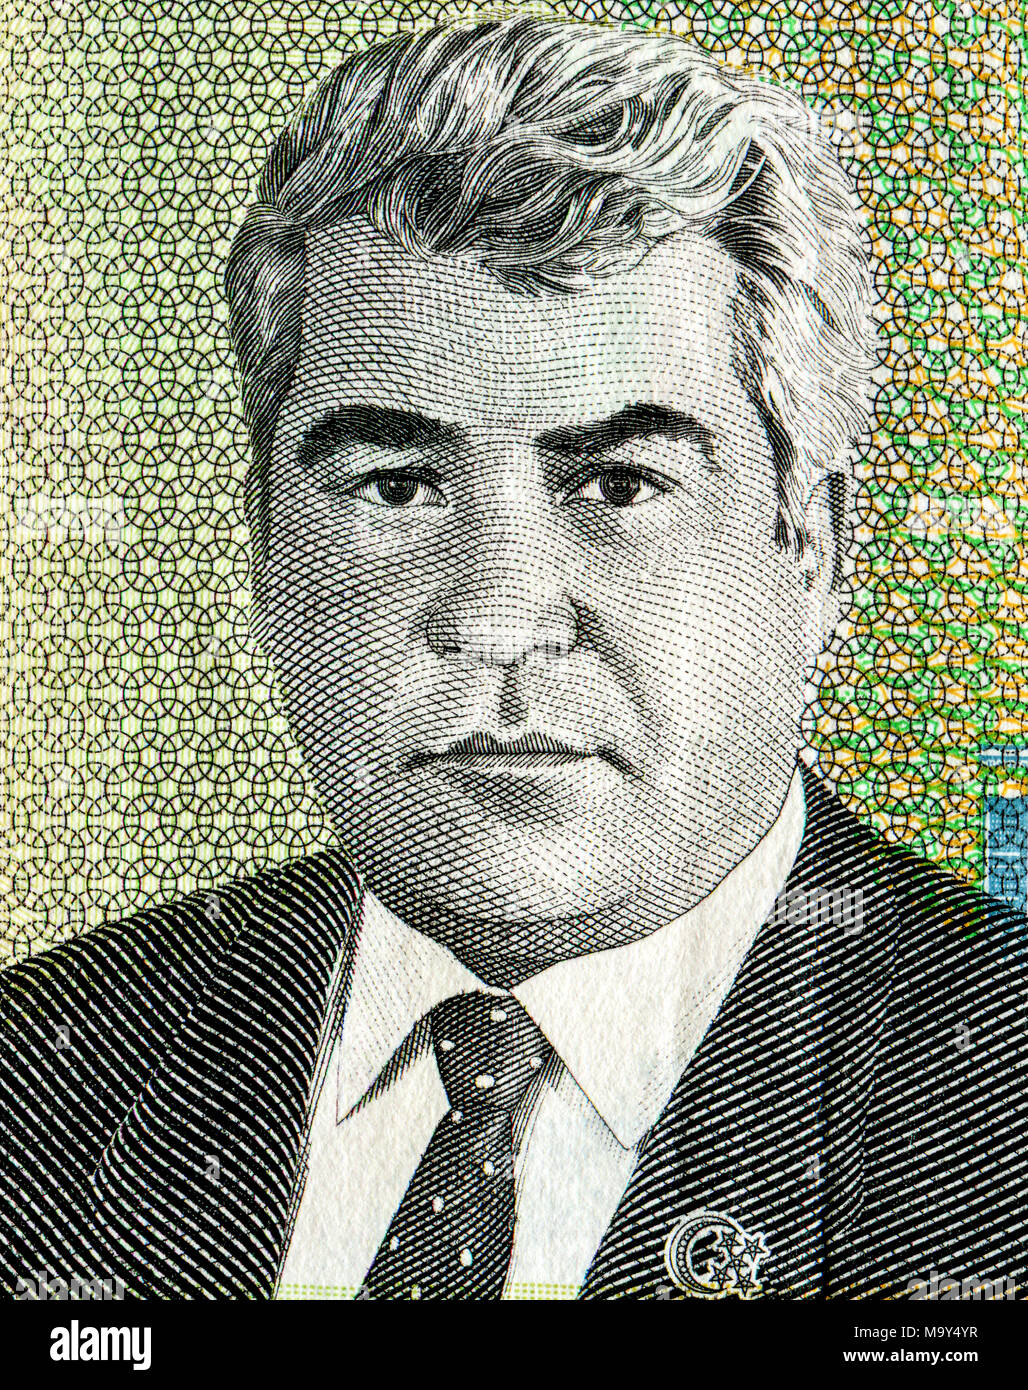 Saparmurat Niyazov portrait from ten thousand turkmenistan manats banknote Stock Photo